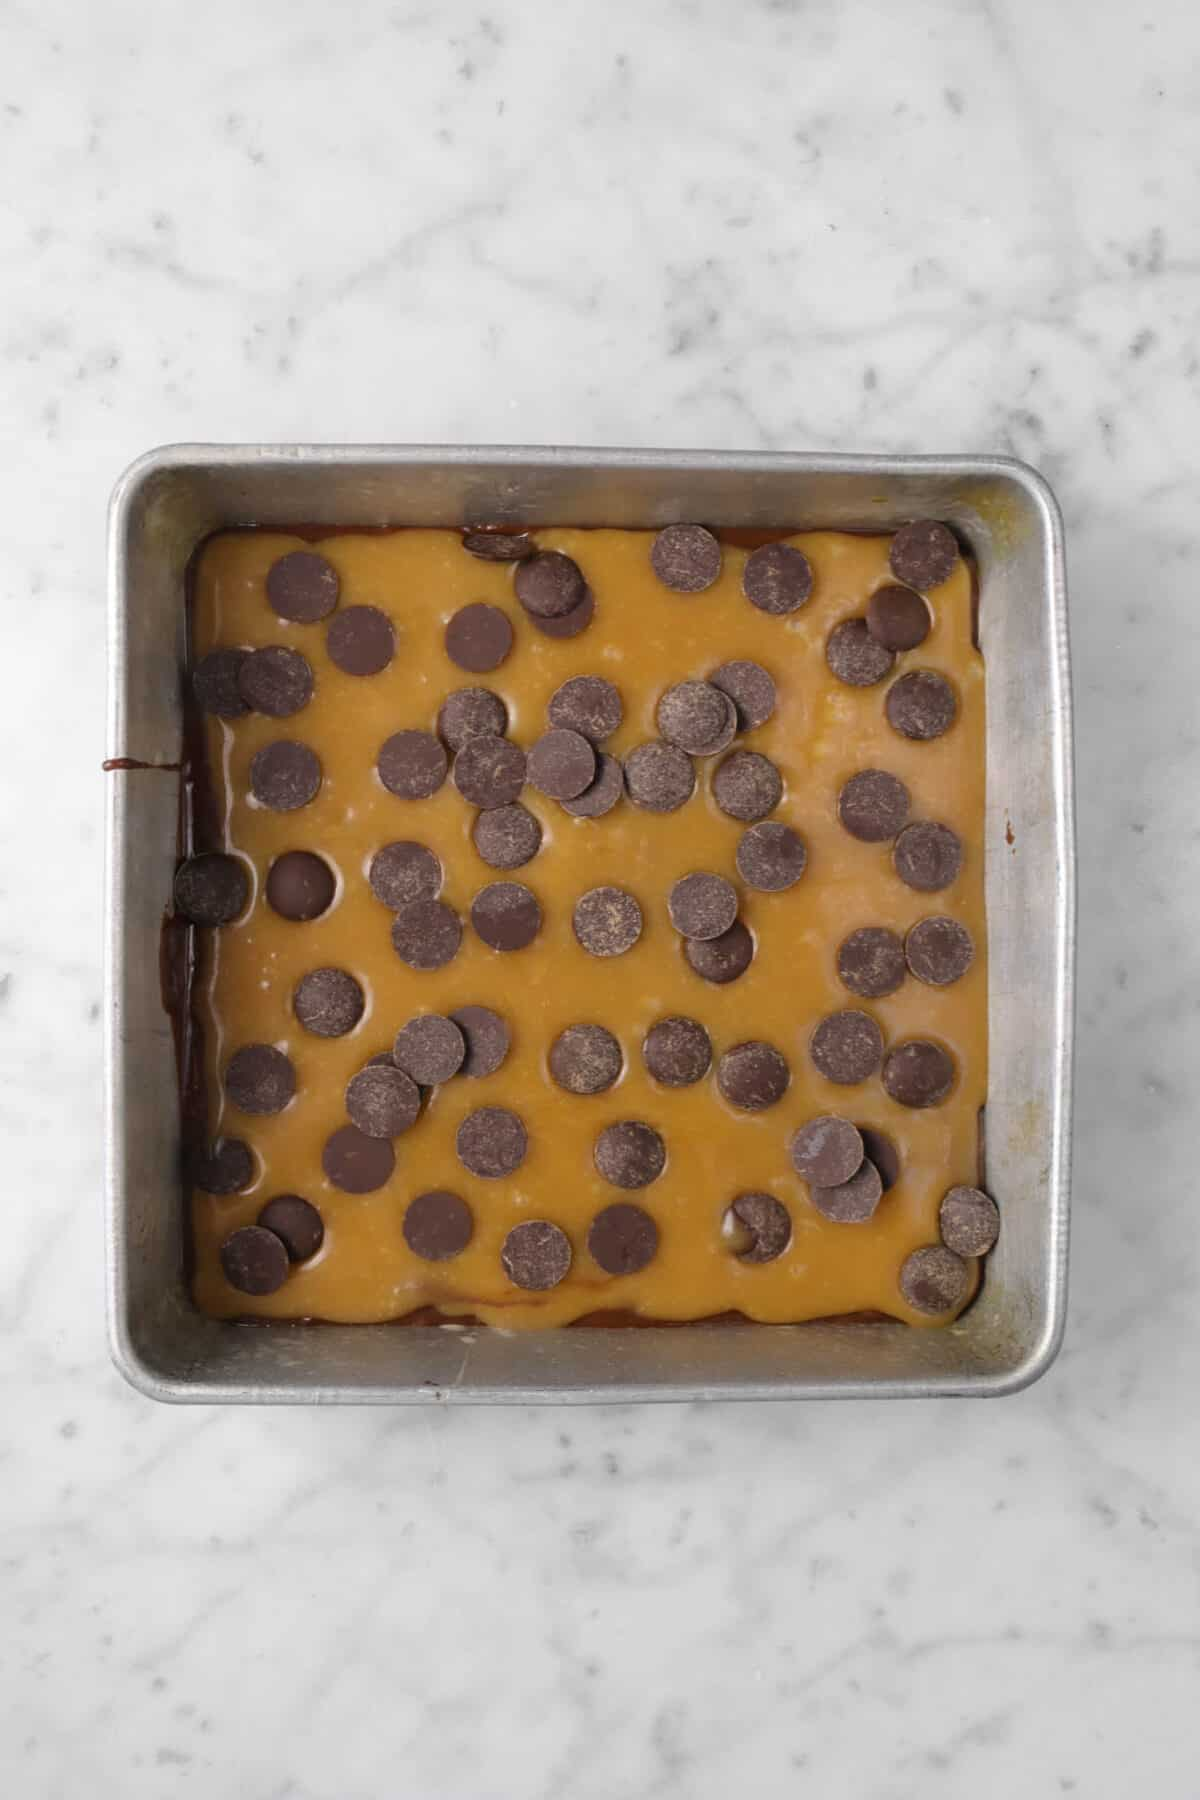 Chocolate chips added over caramel